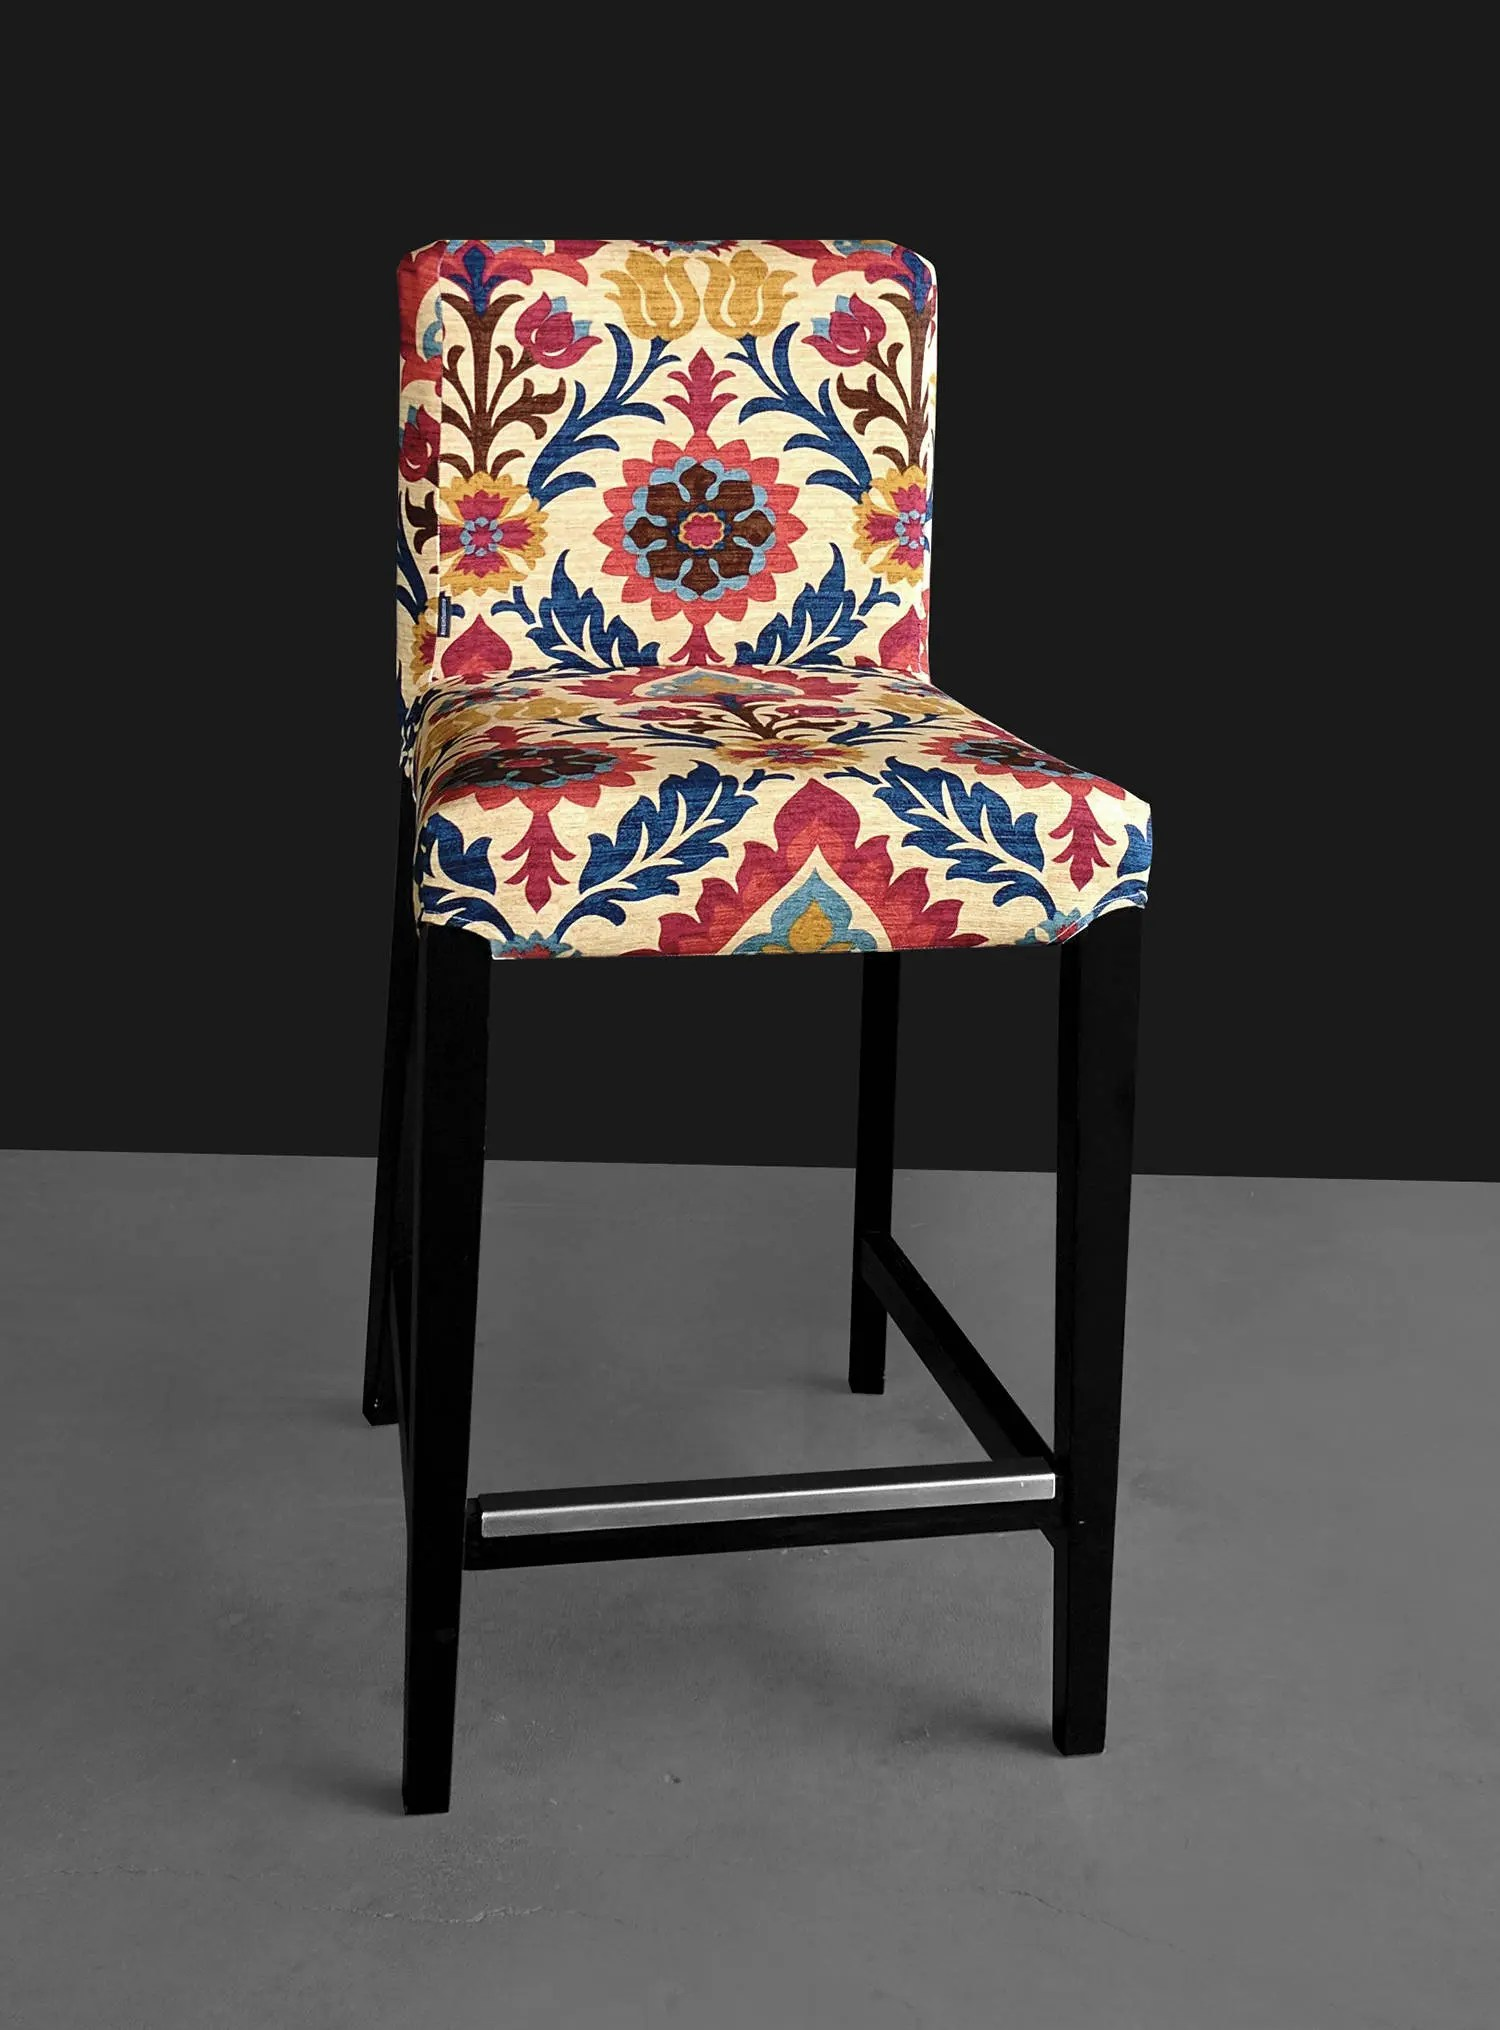 bar stool chair rung protectors folding beach chairs target australia colorful flowers ikea henriksdal cover